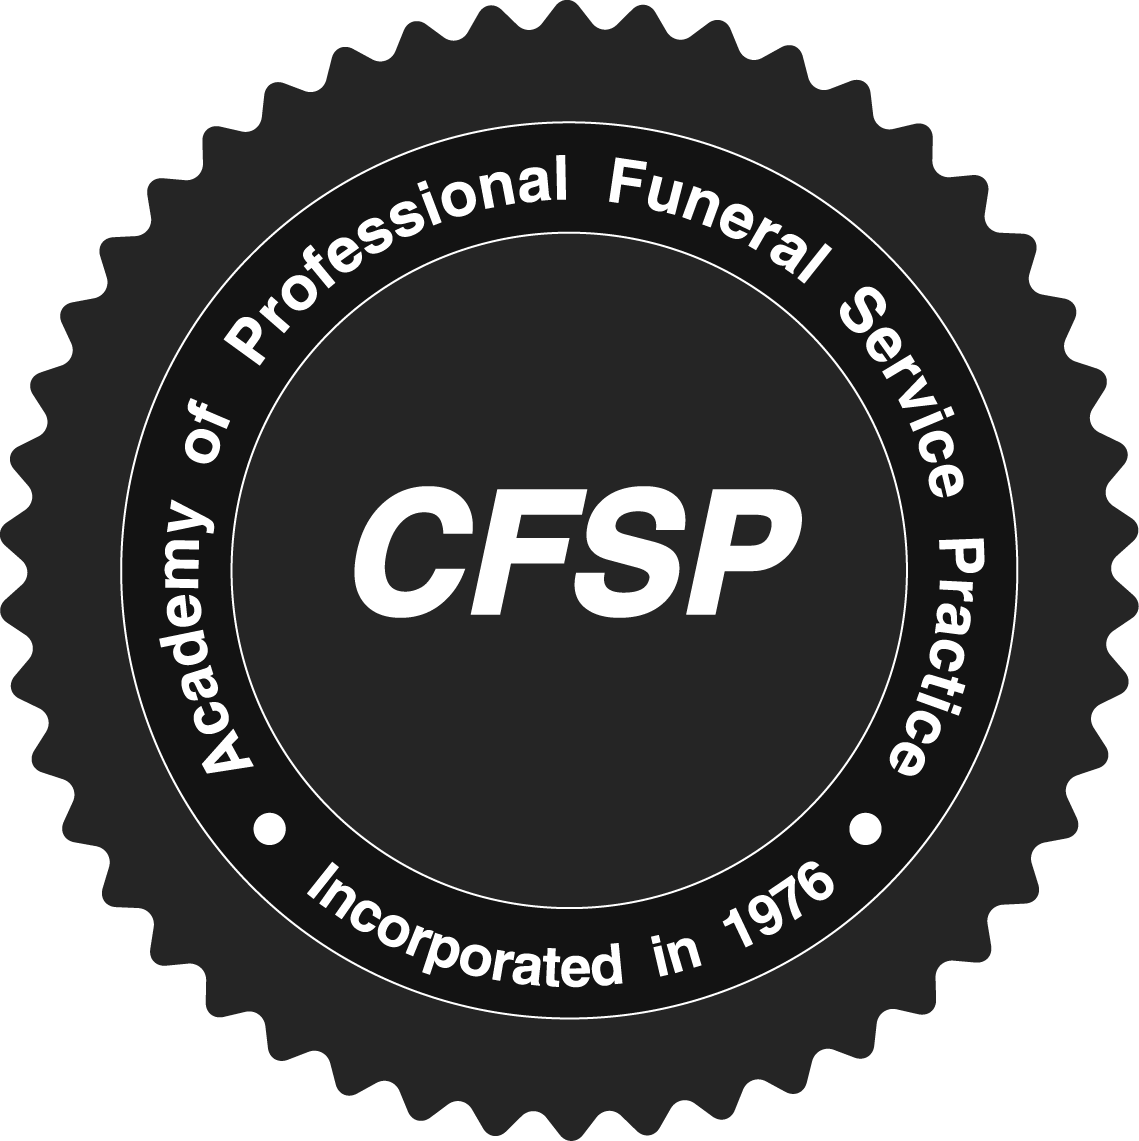 Academy of Professional Funeral Service Practice Logo